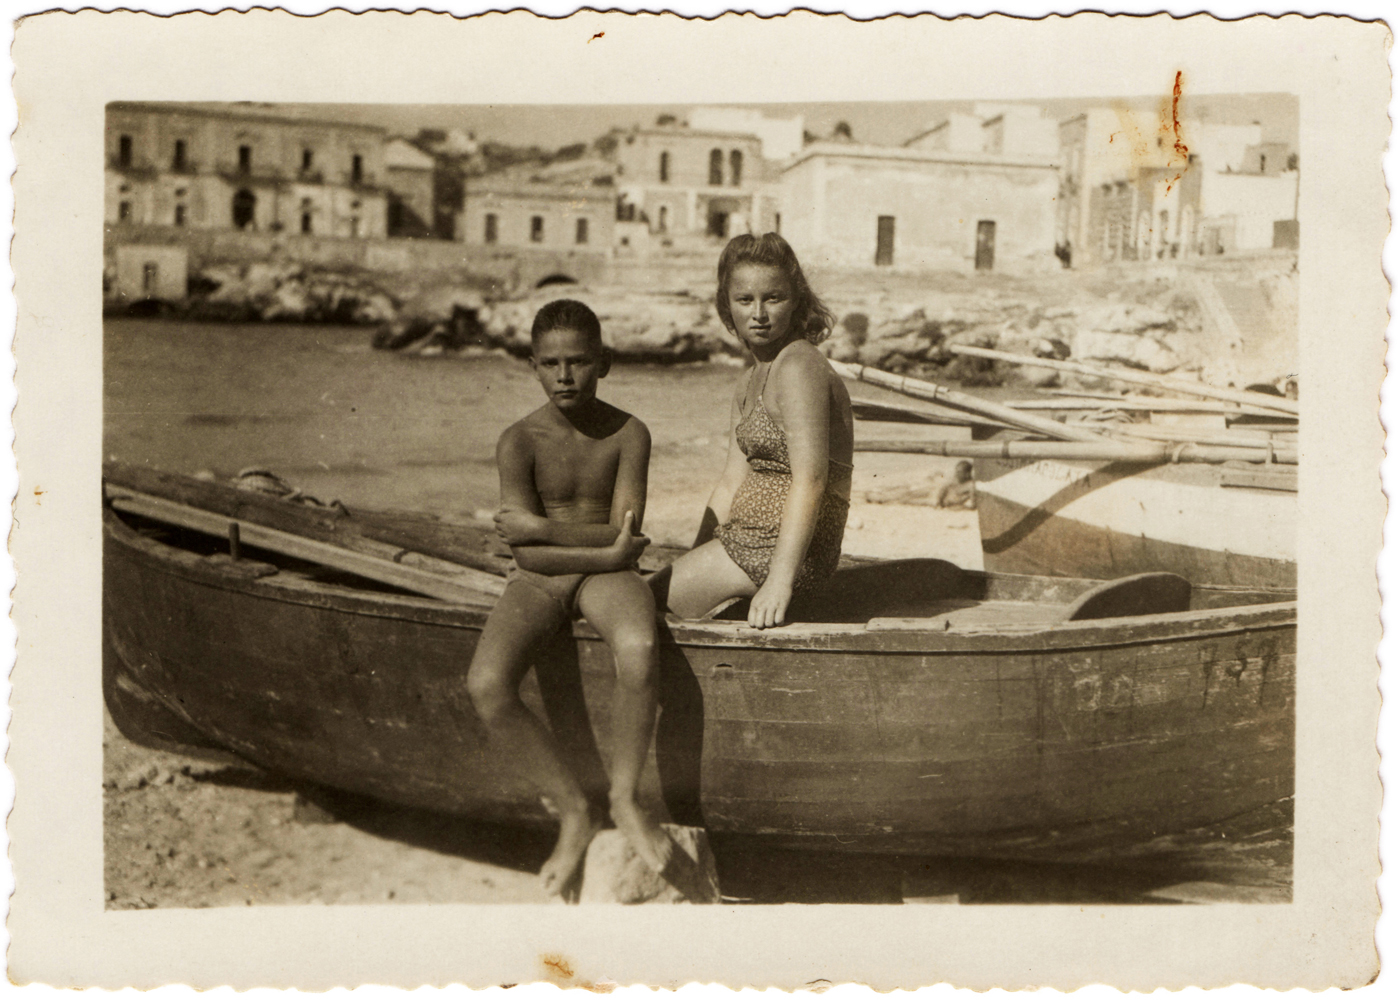 On the beach of Santa Maria al Bagno, August 1946. (From the collection of Paolo Pisacane)